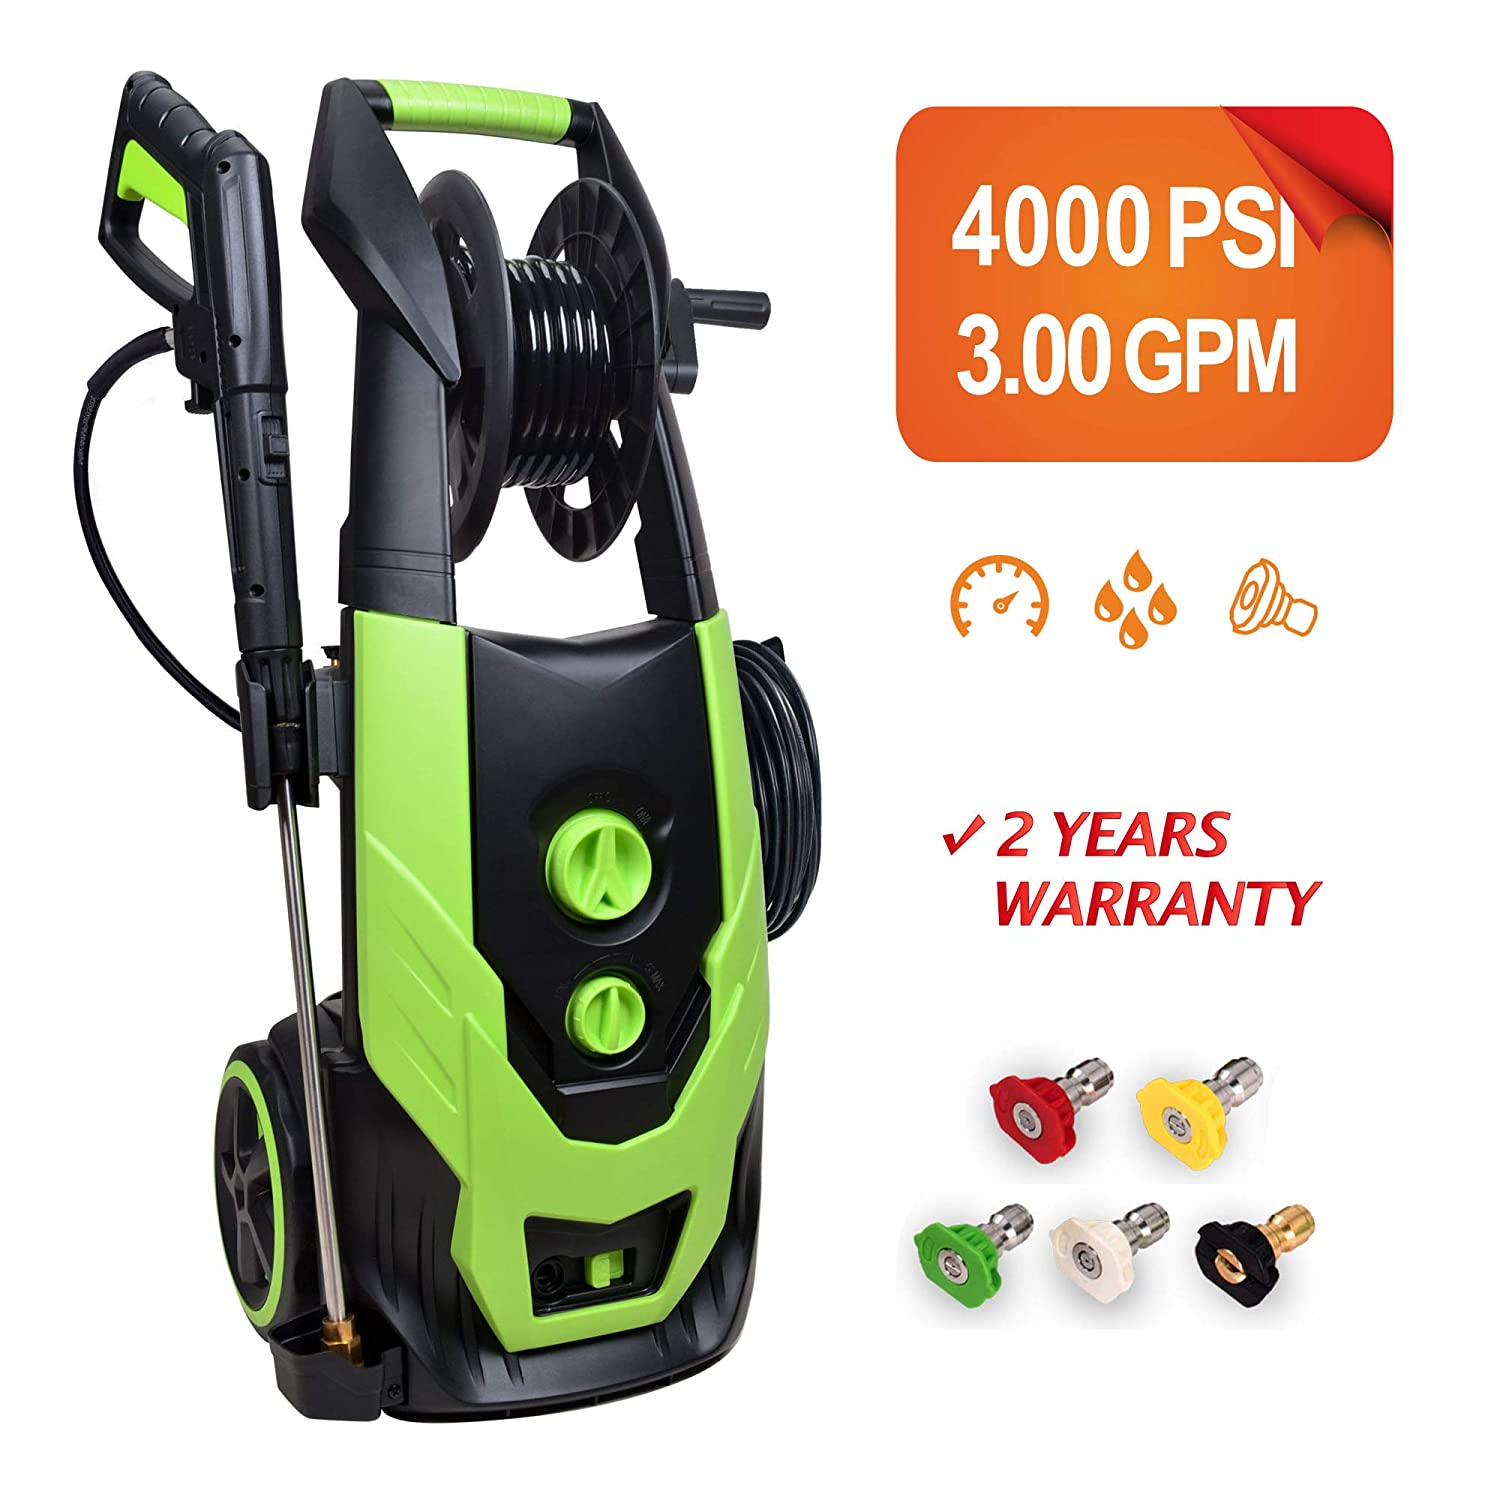 Titans 4000 PSI 3.0 GPM Electric Pressure Washer, Car Washer with Hose Reel, 5Pcs Quick-Connect Spray Tips,Built in Foam Cannon